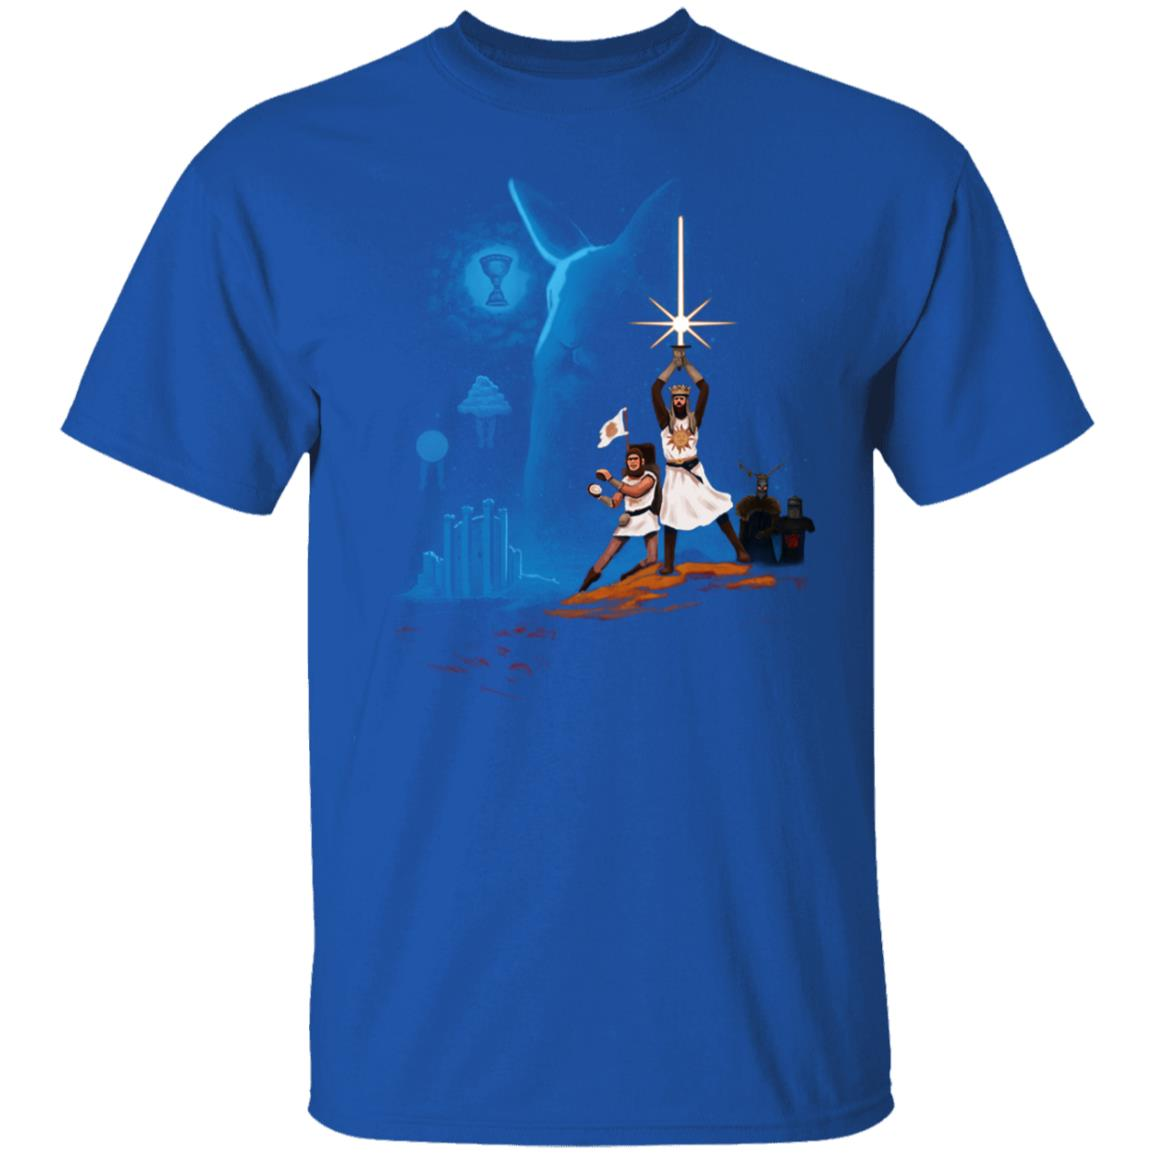 Monty python and the holy grail shirt